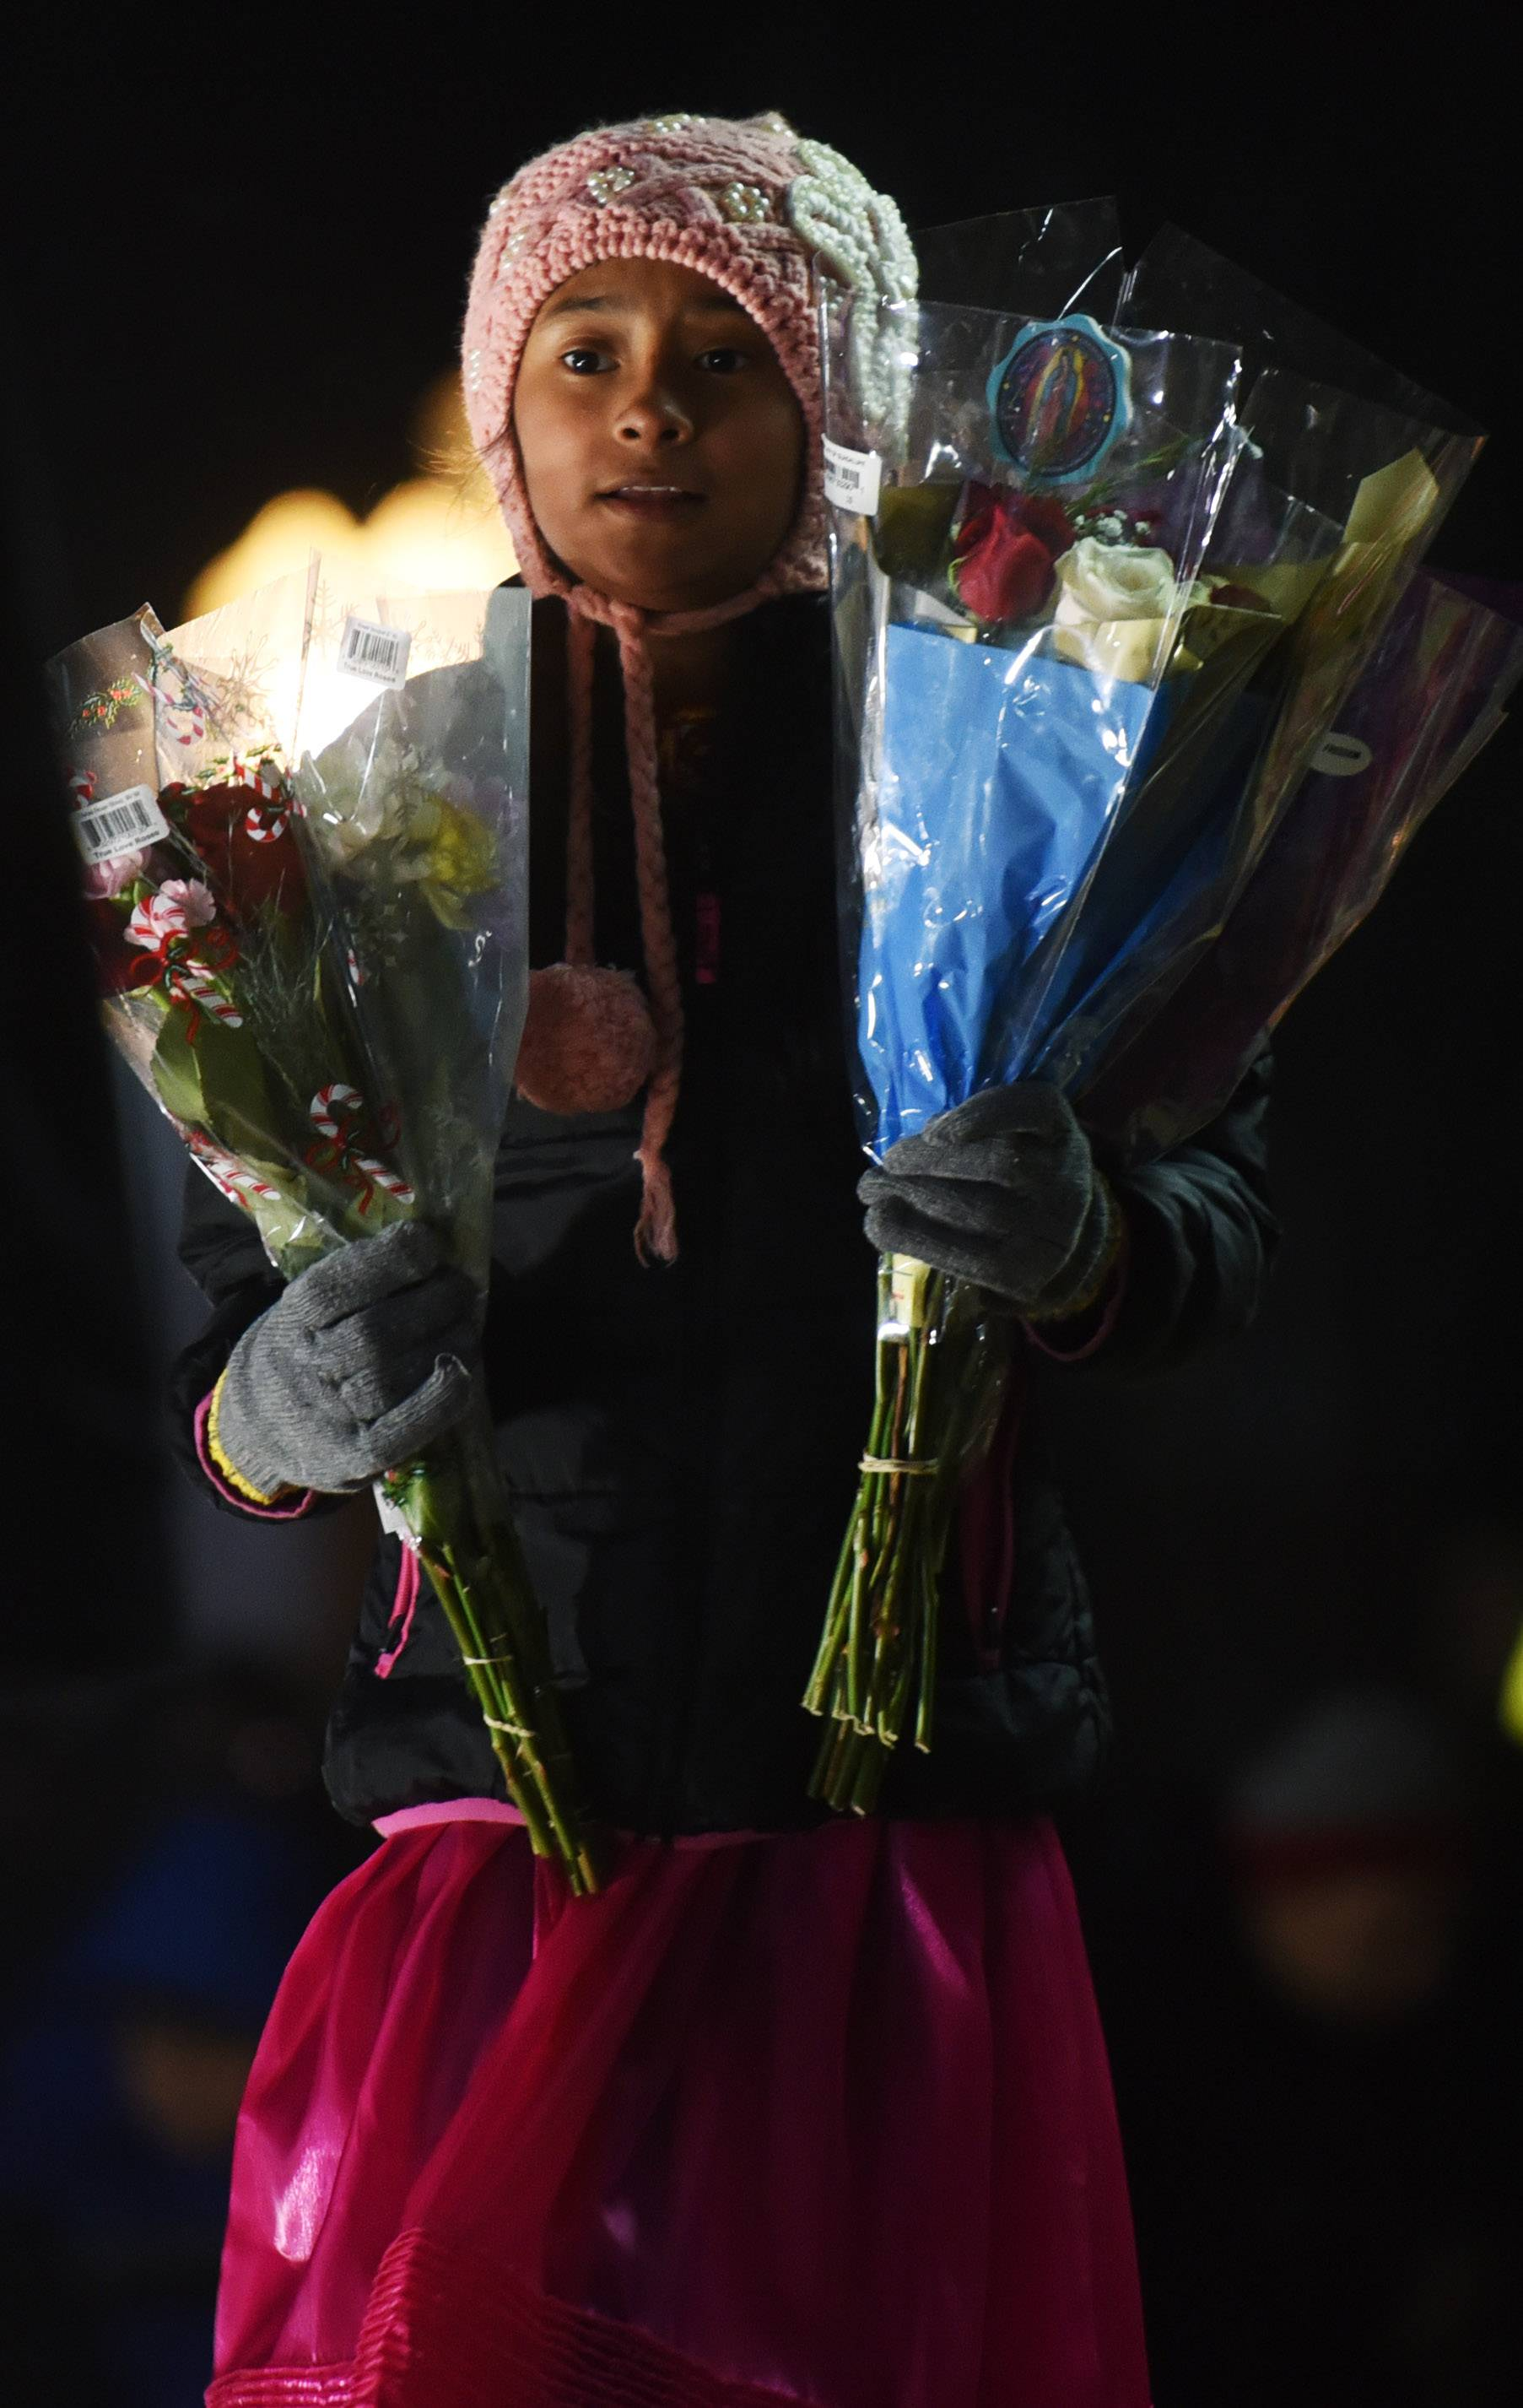 Alexandra Hernandez, 12, of Carpentersville carries flowers for placement at the shrine during the Feast of Our Lady of Guadalupe in Des Plaines Tuesday.